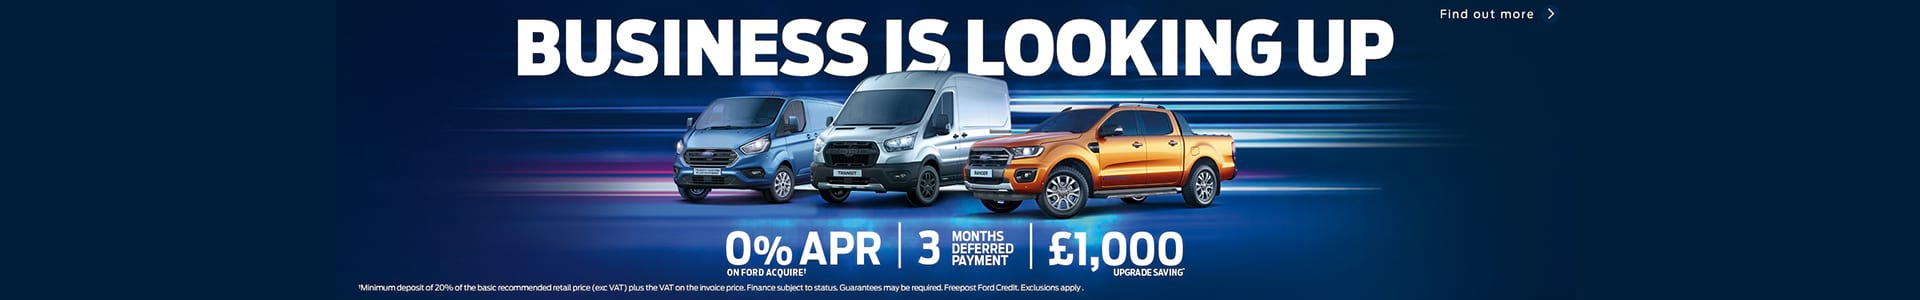 Business Is Looking Up save £1000 and 0% APR available